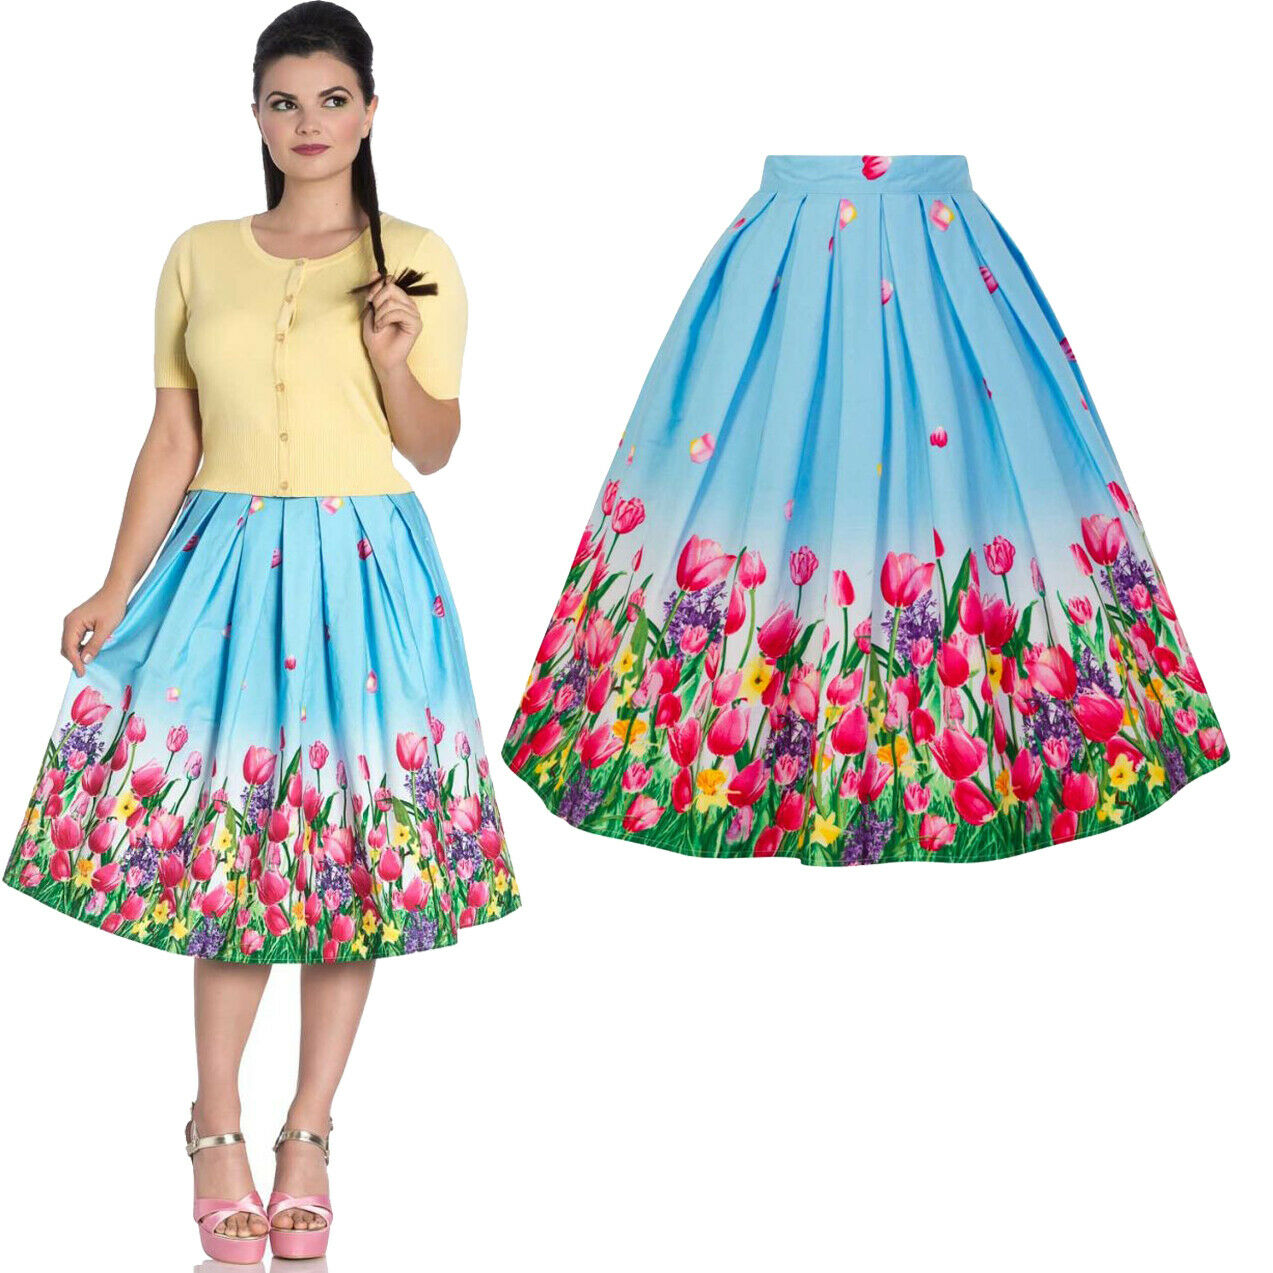 Circle SKIRT 16 14 12 10 8 - bluee Circle Tulip Floral Retro 1950s Vintage style